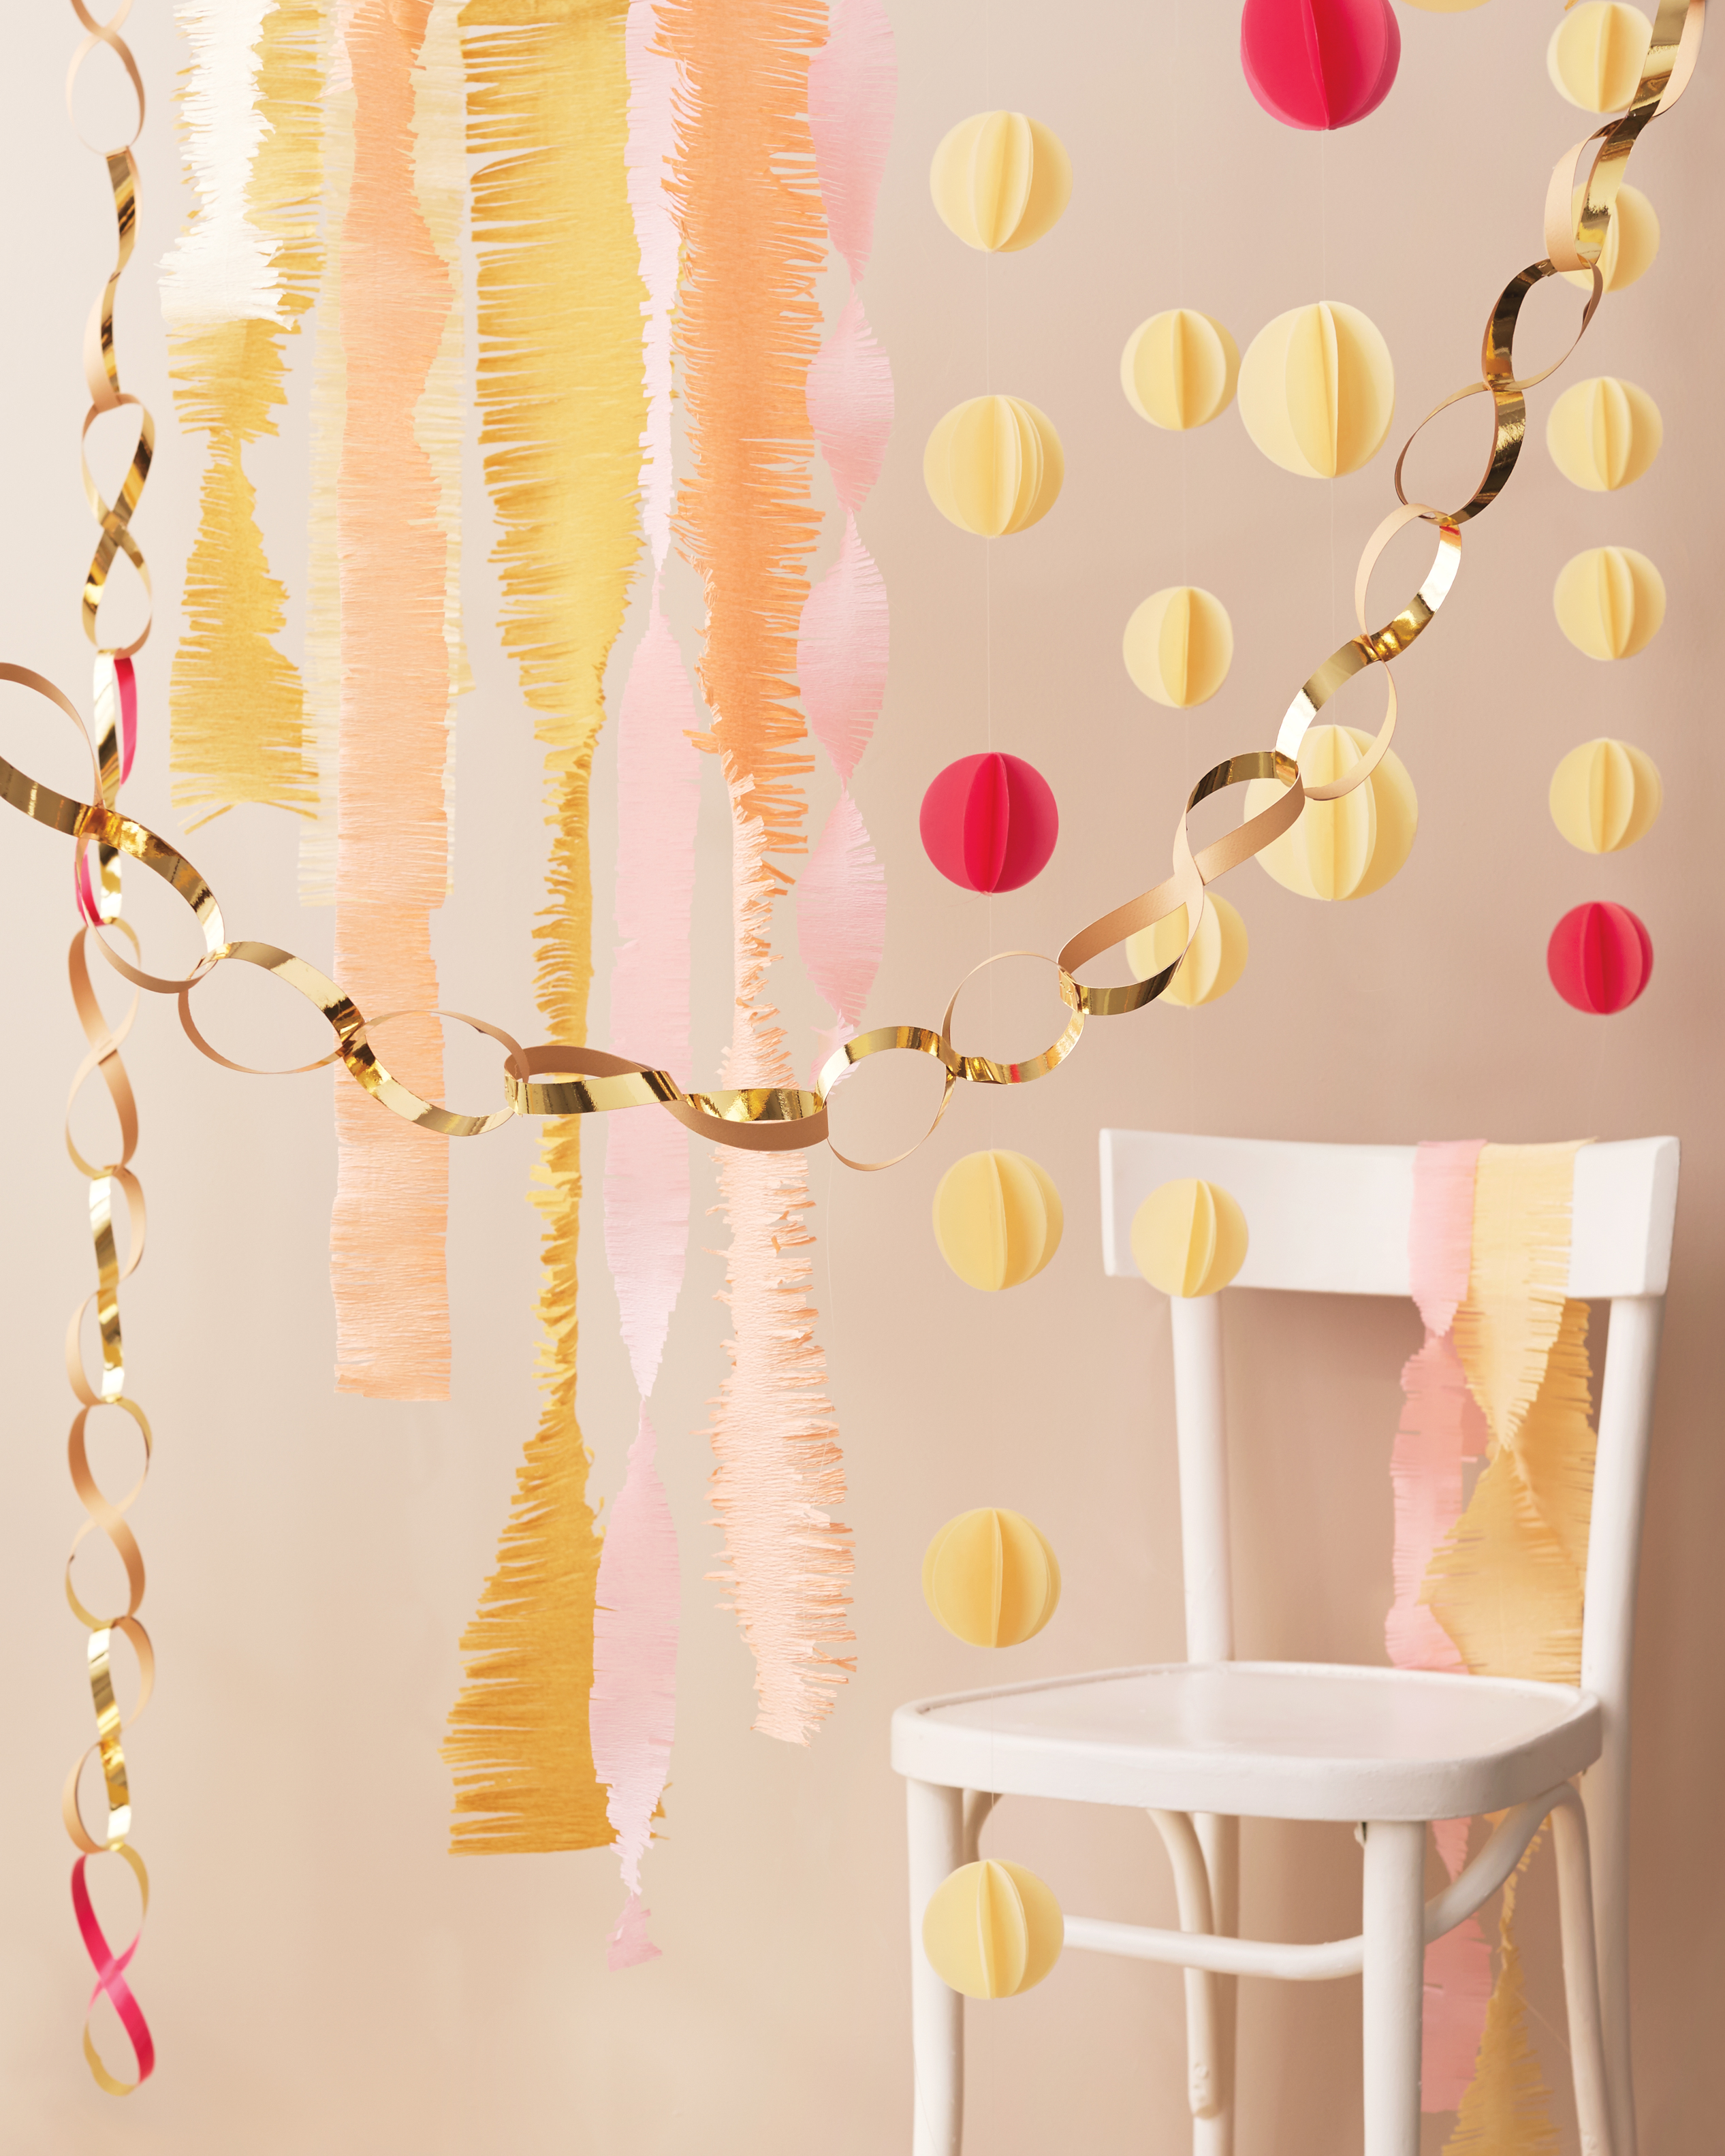 Drape, Dangle, and Entwine! 3 DIY Streamers to Decorate Your Celebration